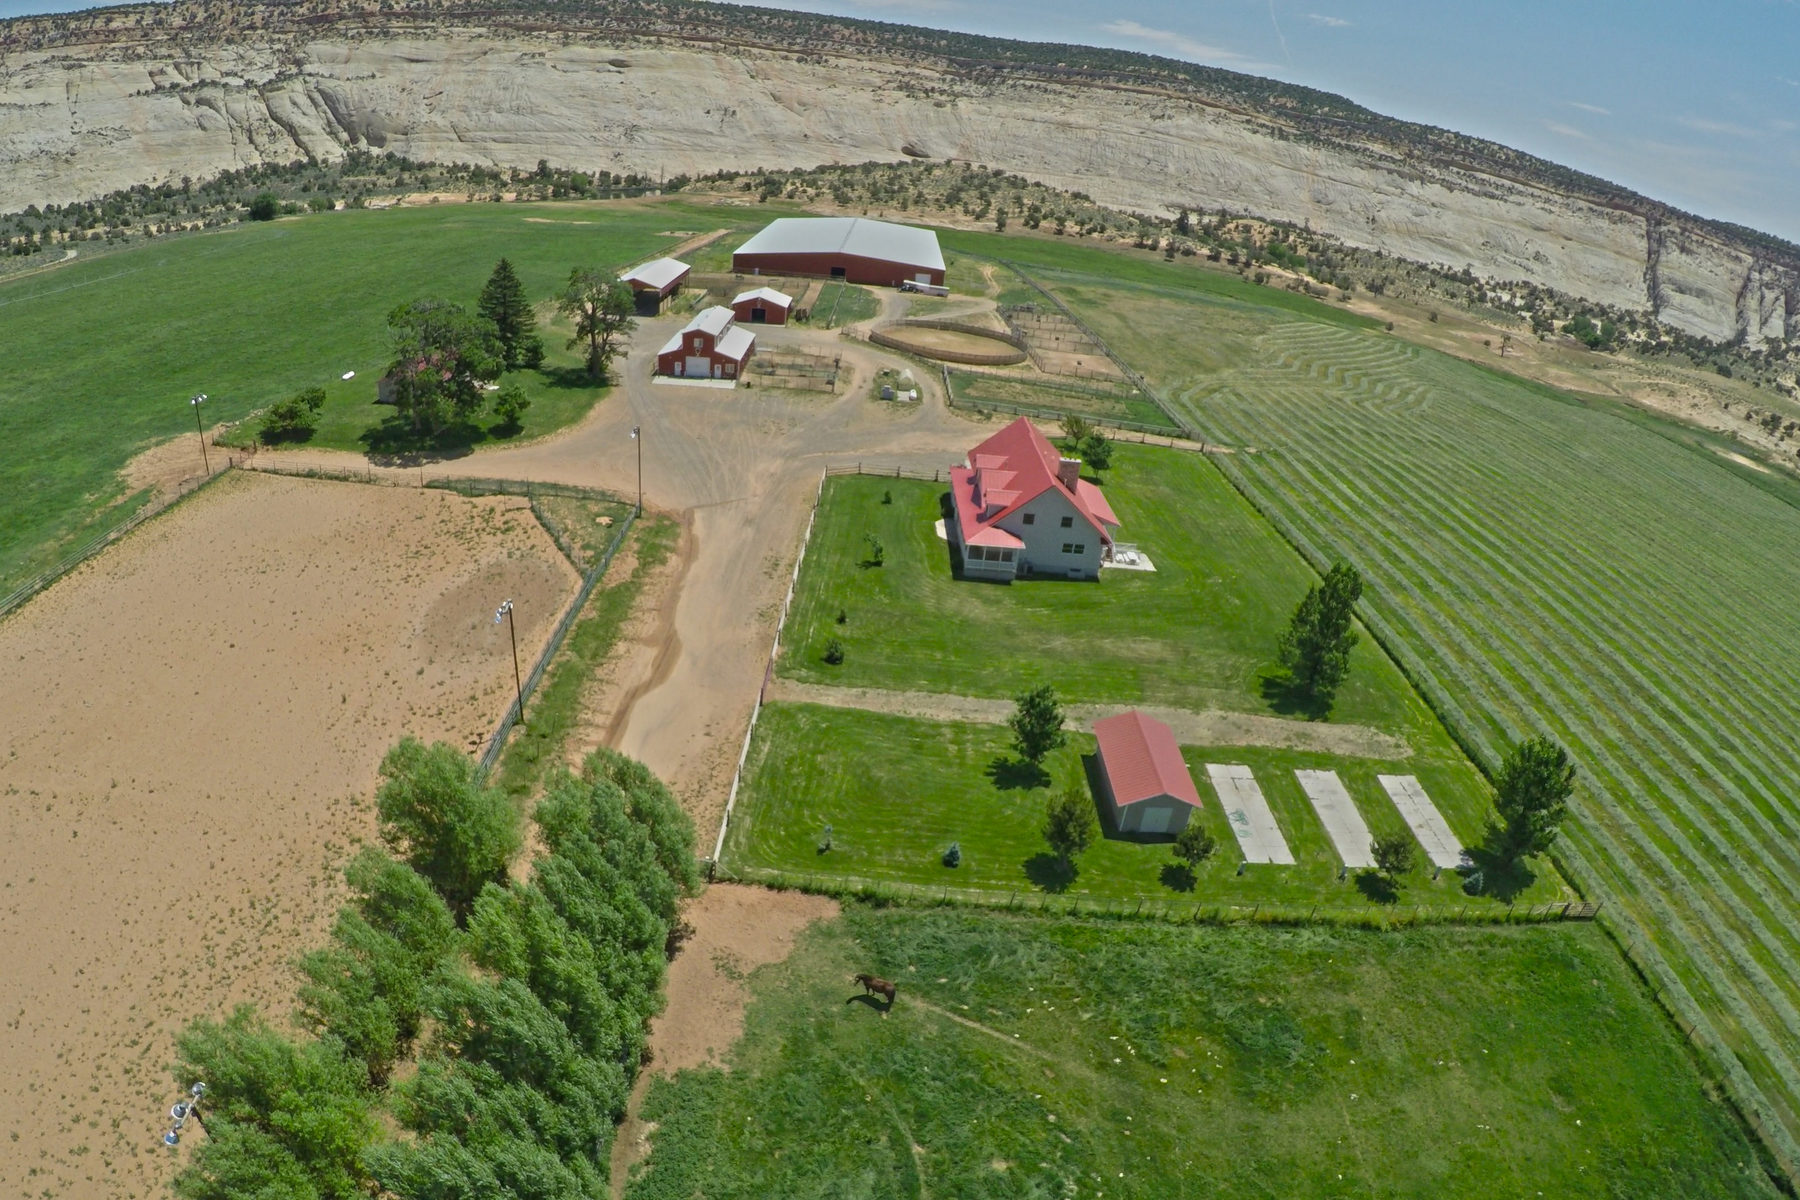 Farm / Ranch / Plantation for Sale at A Utah Cattle and Equestrian Legacy Ranch Offering 2405 Lower Boulder Rd, Boulder, Utah, 84716 United States